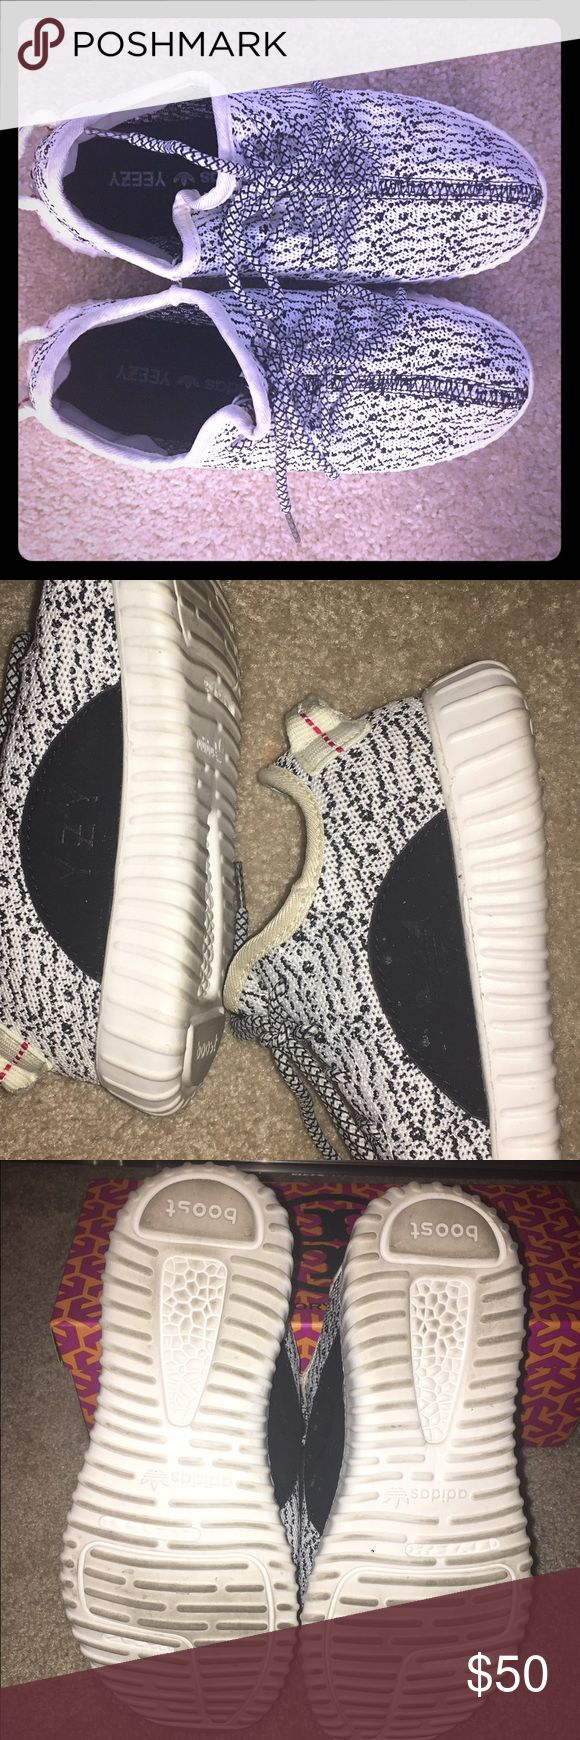 Yeezy Boost Inspired Tennis Shoes I purchased these for quite a bit on eBay! Gently used. See photos for condition. Please don't expect new shoes. Shoes